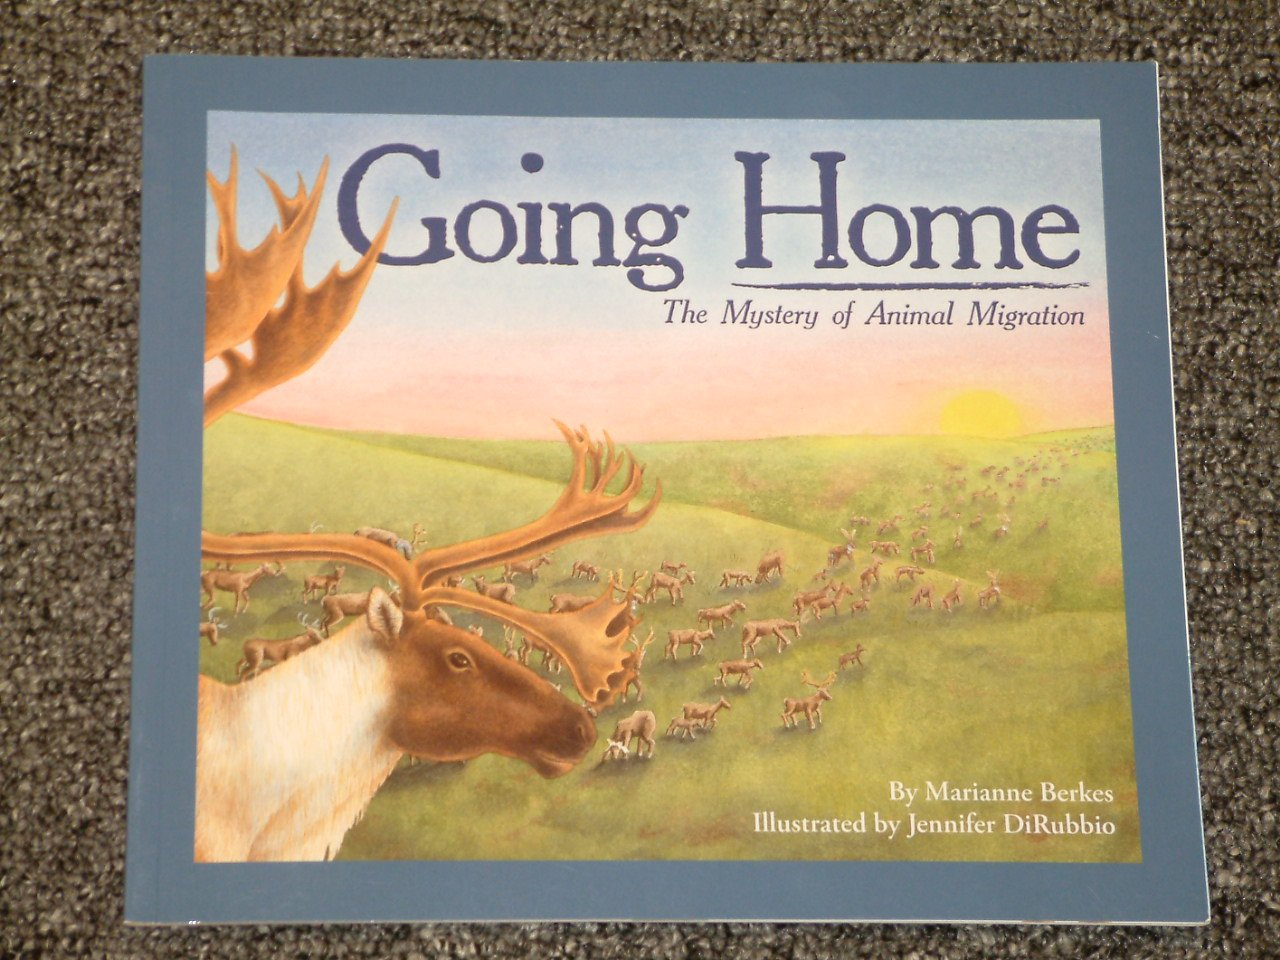 Going Home The Mystery of Animal Migration by Marianne Berkes